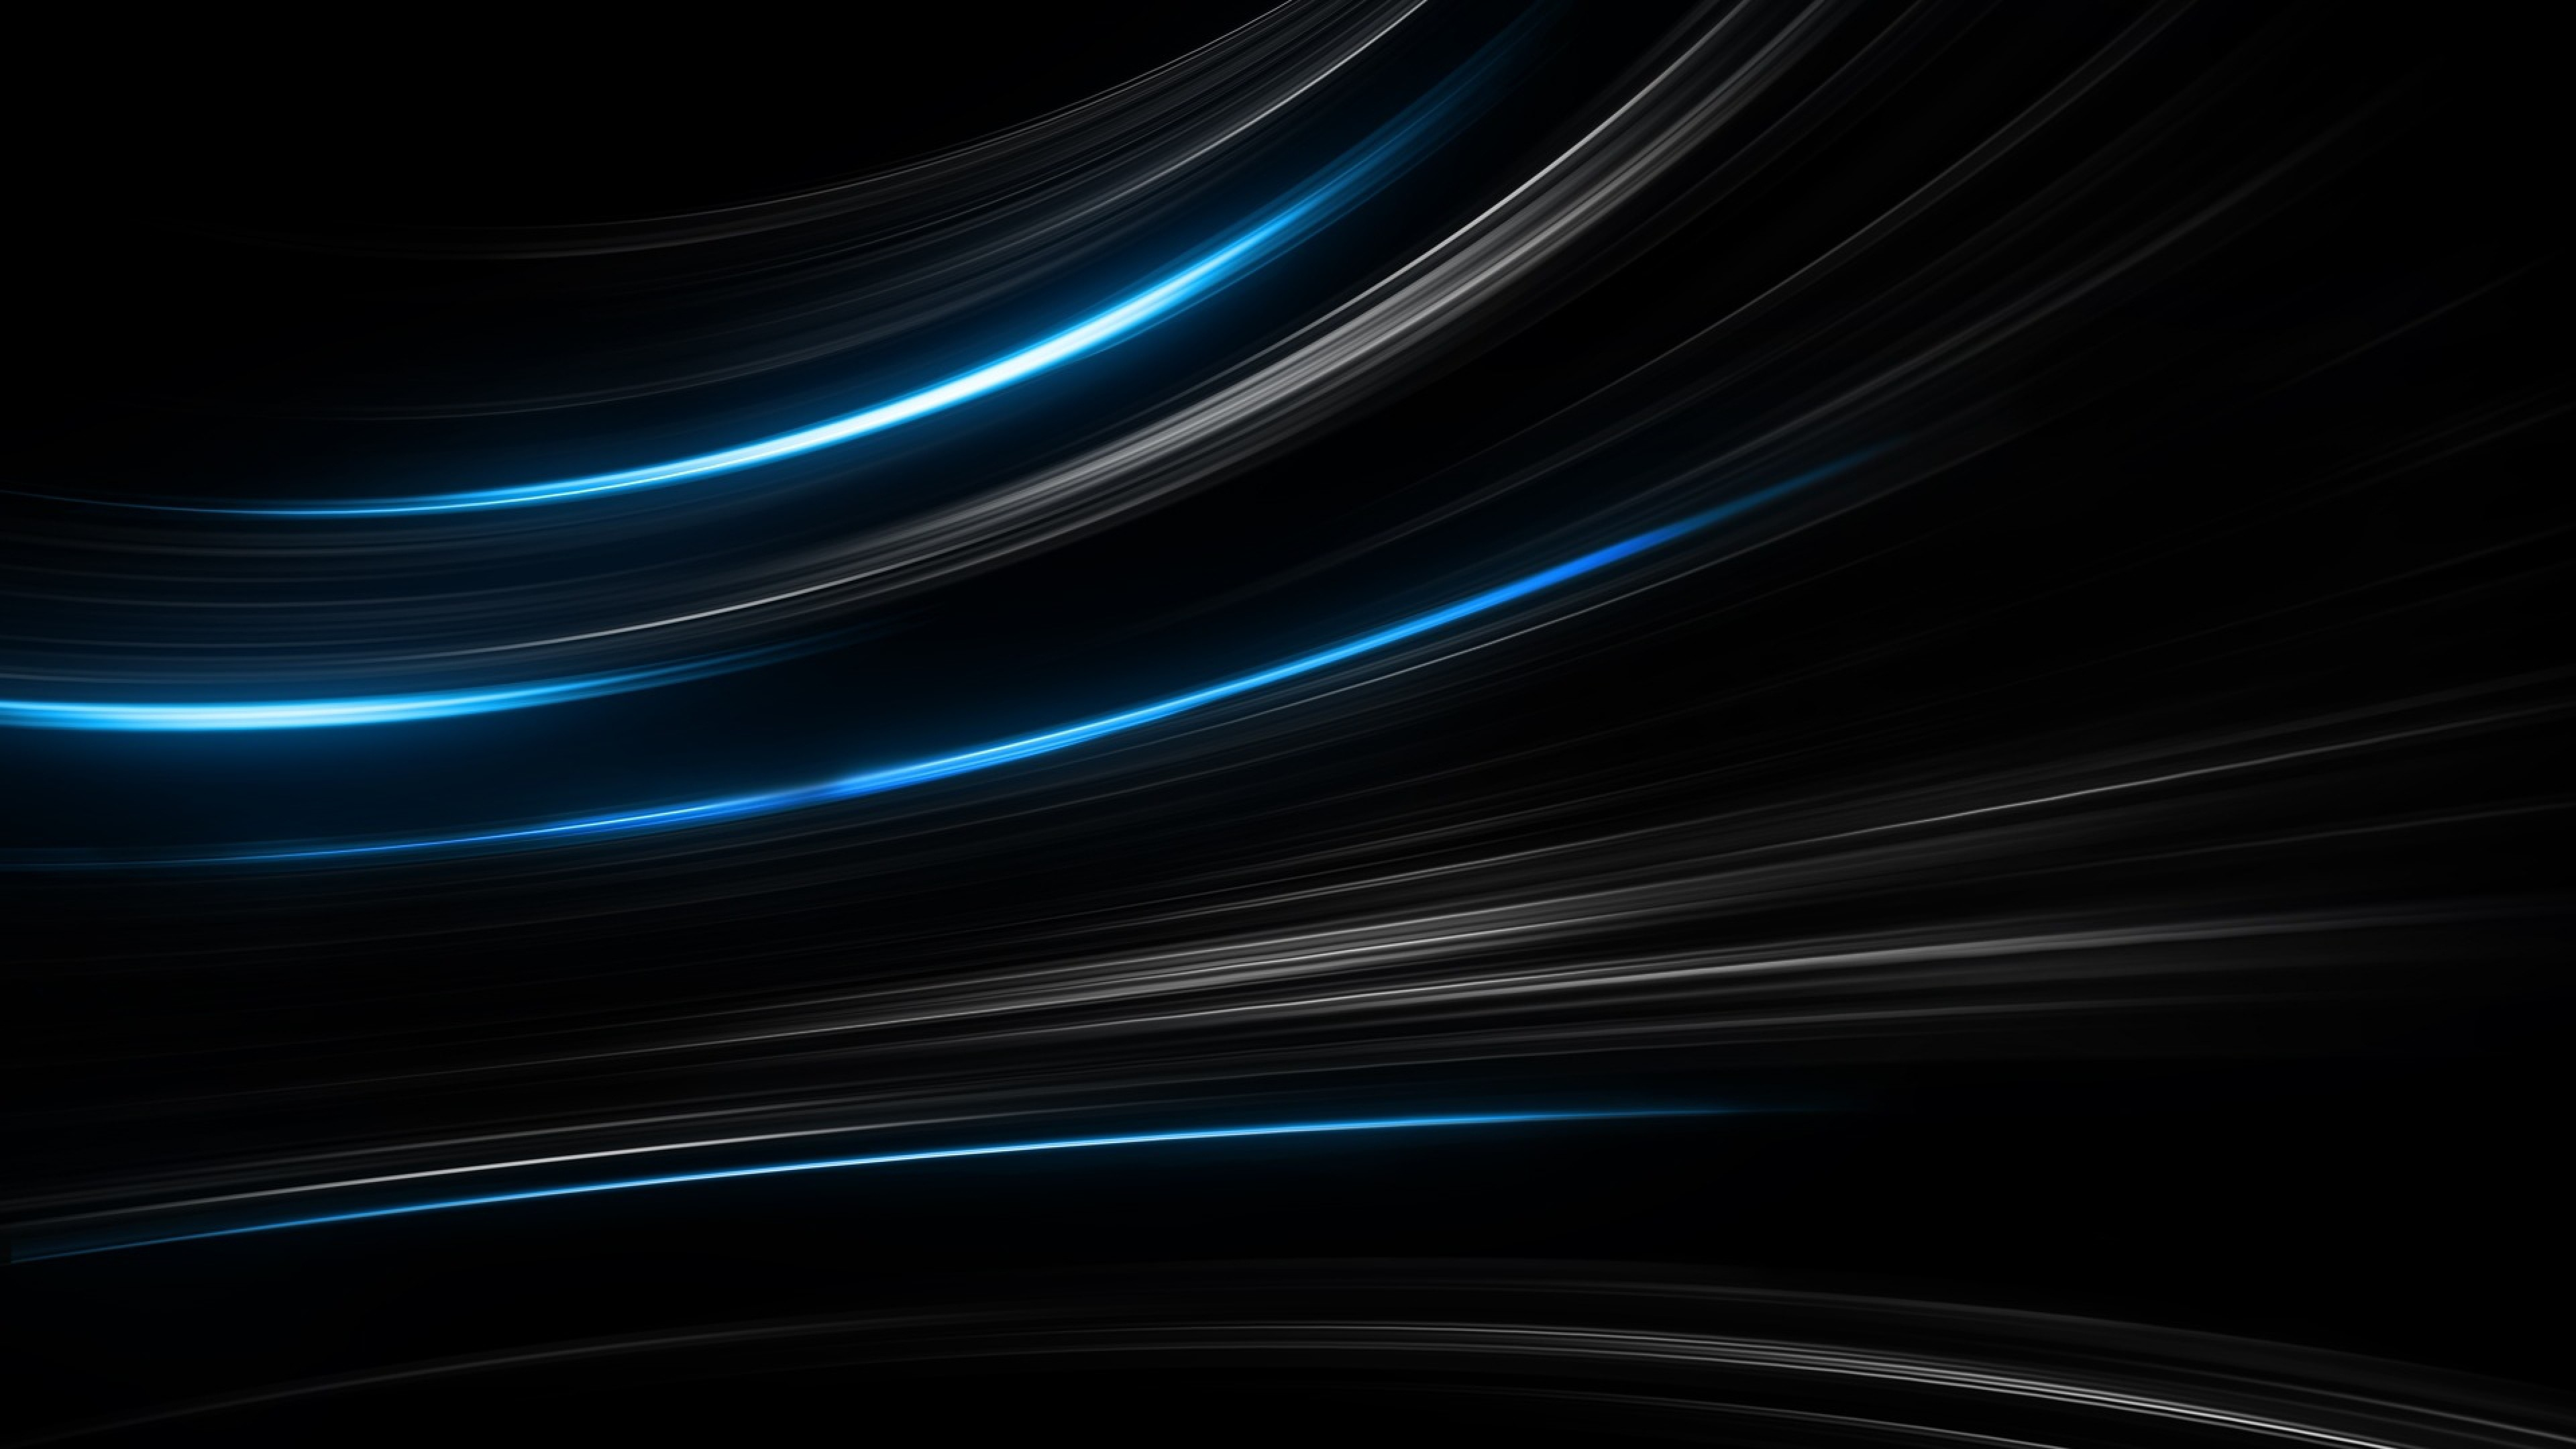 Black and Blue Abstract Wallpaper Backgrounds 1233 – HD Wallpaper Site